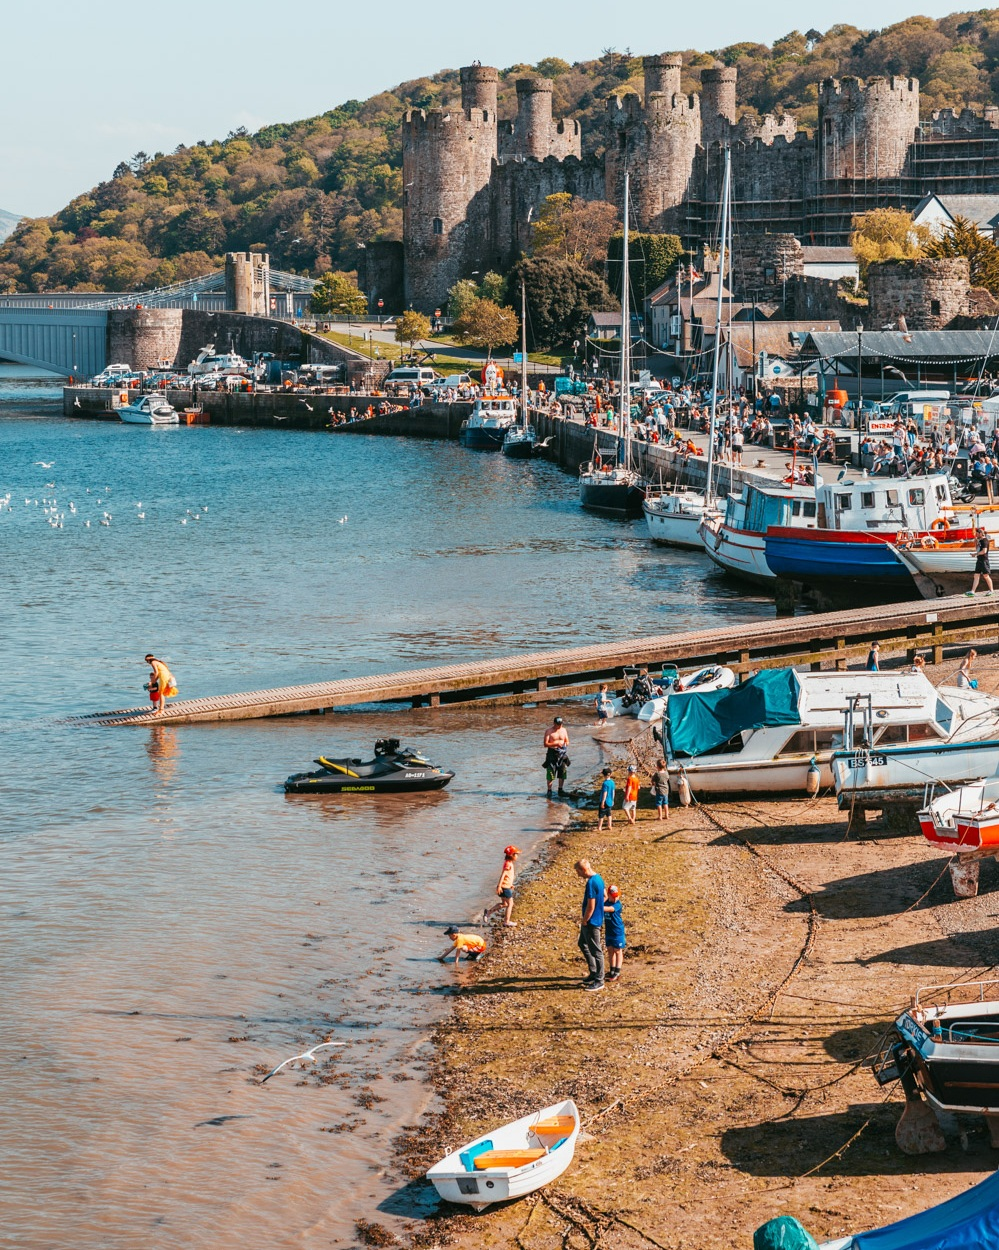 Conwy Castle and harbour // The Most Beautiful Places to Visit in Wales // #readysetjetset #wales #uk #welsh #travel #photospots #blogpost